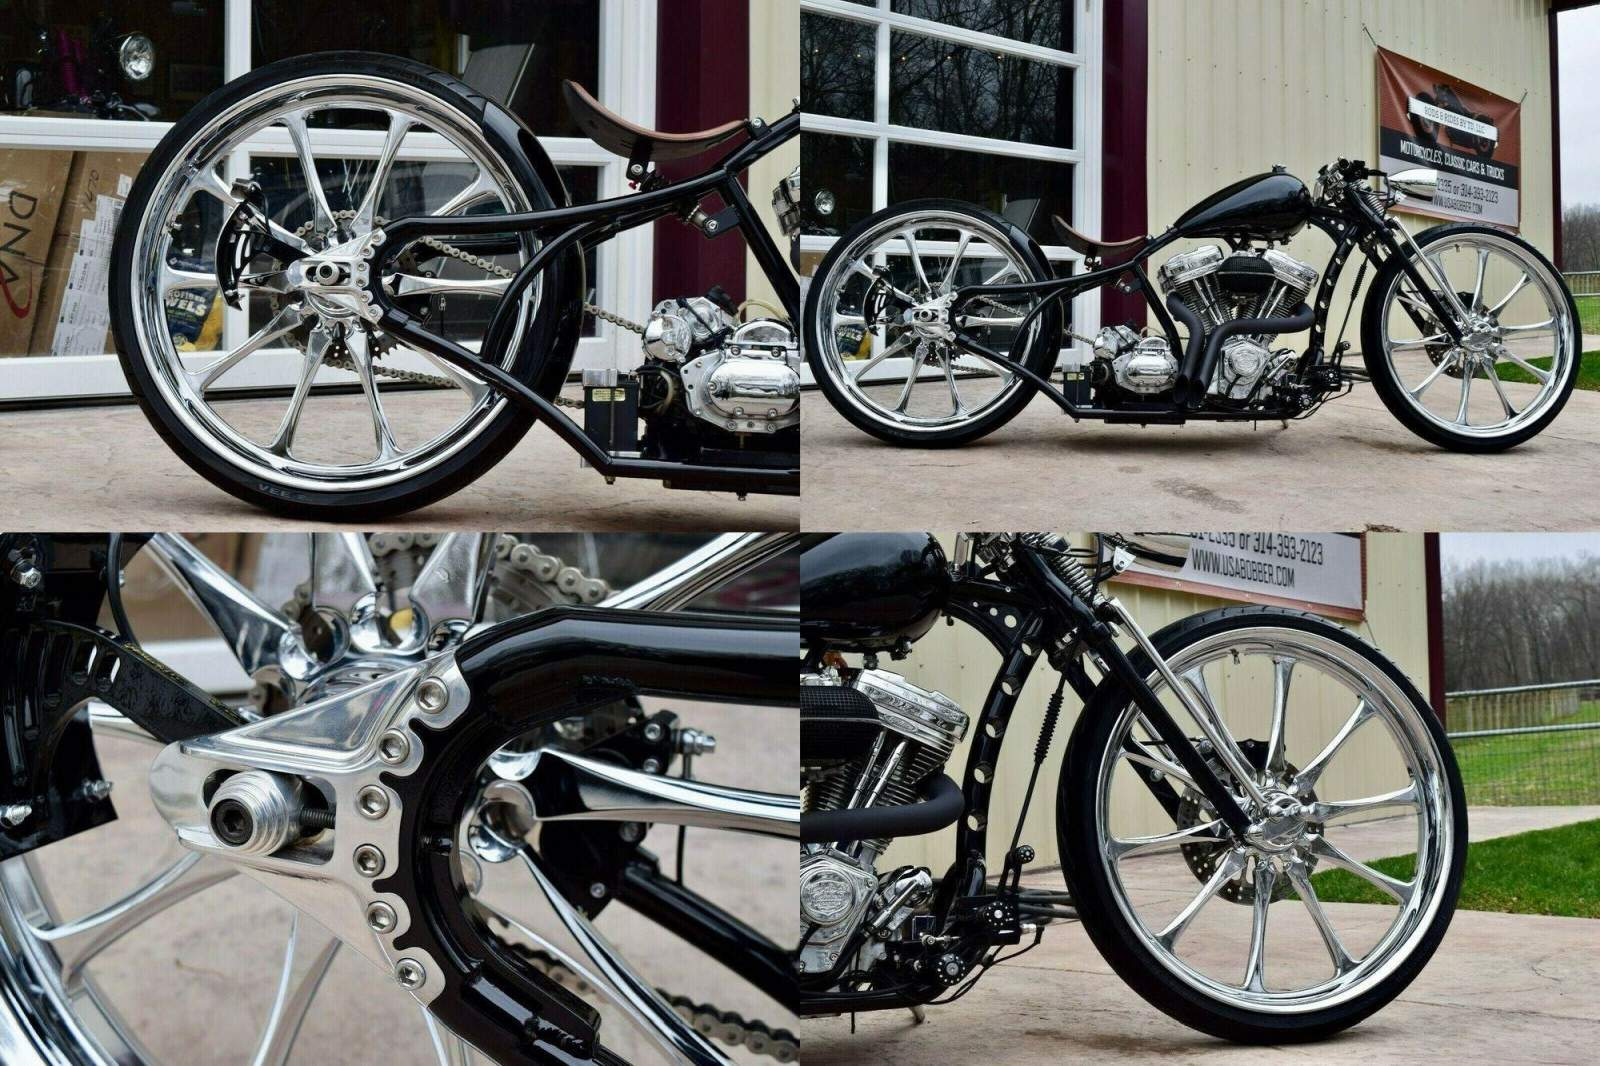 2020 Custom Built Motorcycles RODS AND RIDES BOARDTRACK RACER   for sale craigslist